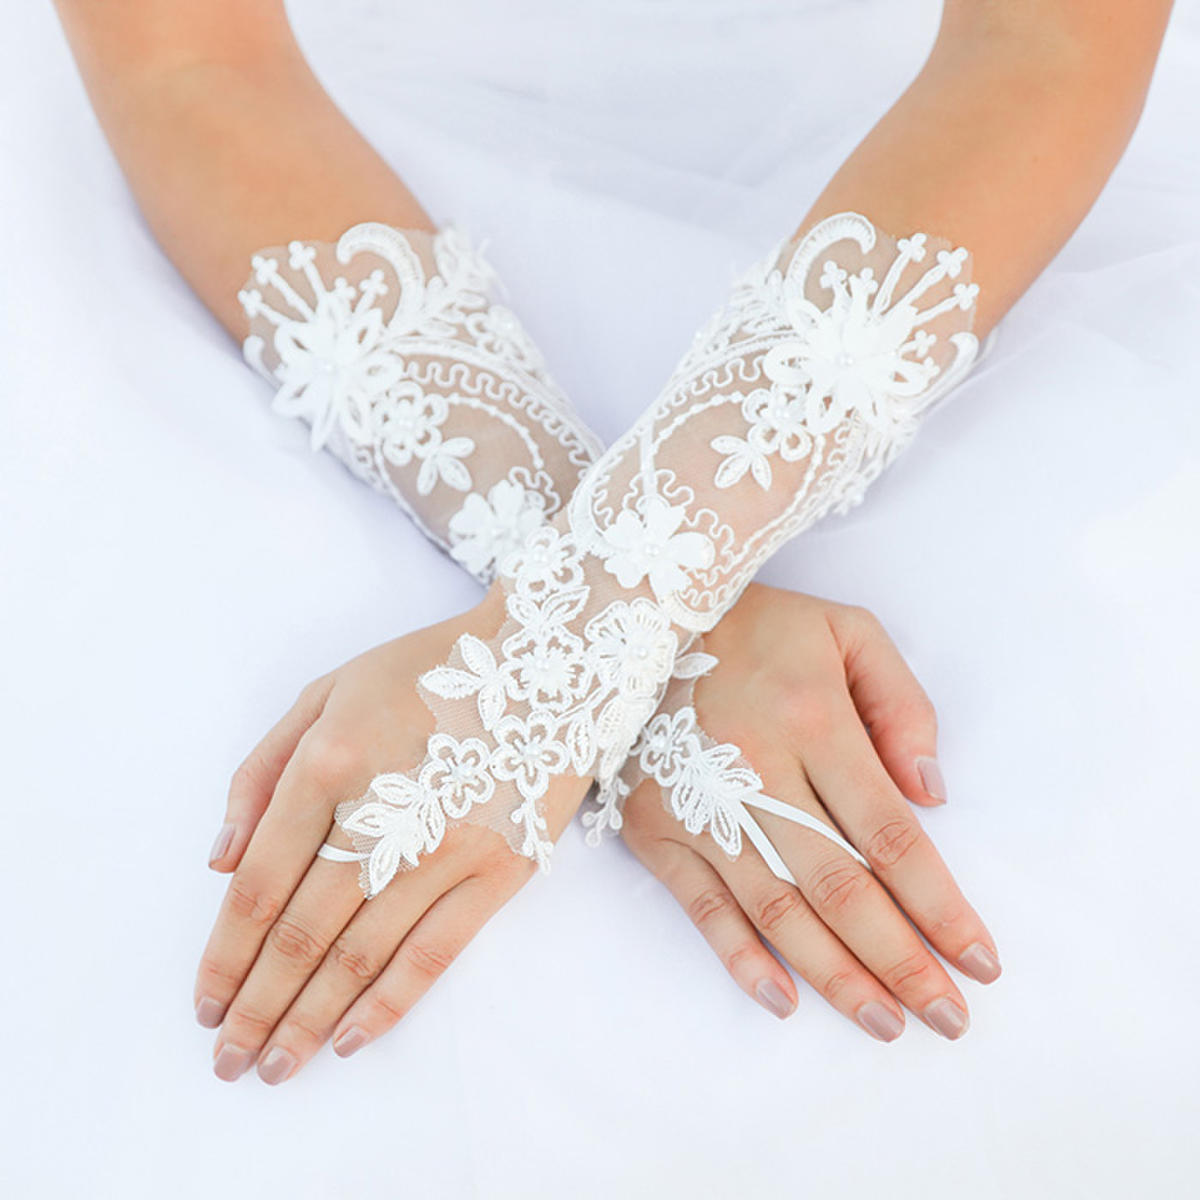 WONA TRADING INC - Floral Lace Fingerless Wedding Glove